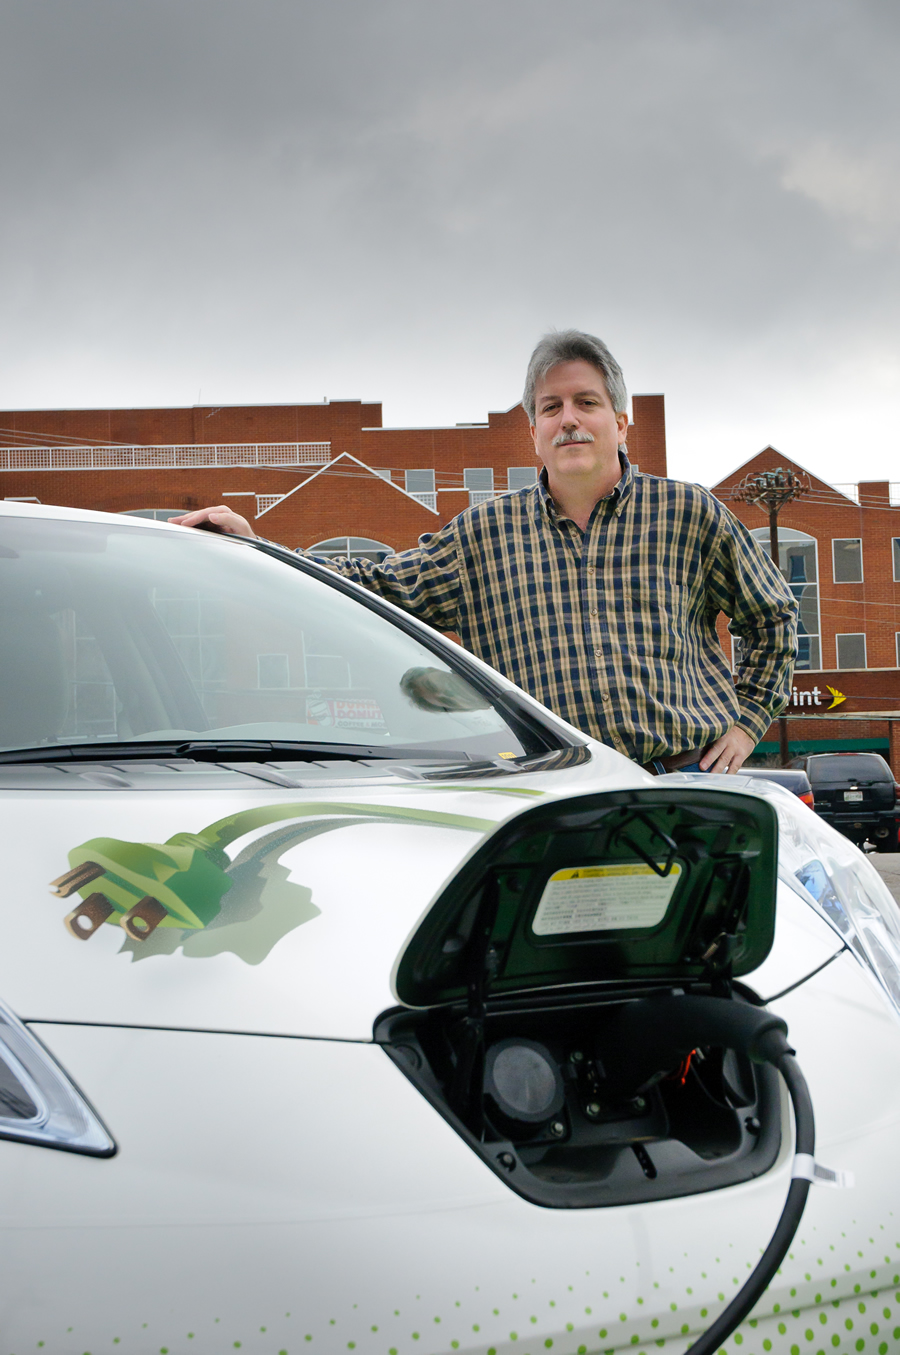 Brown charges one of the NES electric vehicles in a parking lot near Vanderbilt University in Nashville. Credit: Joe Weaver Photography.